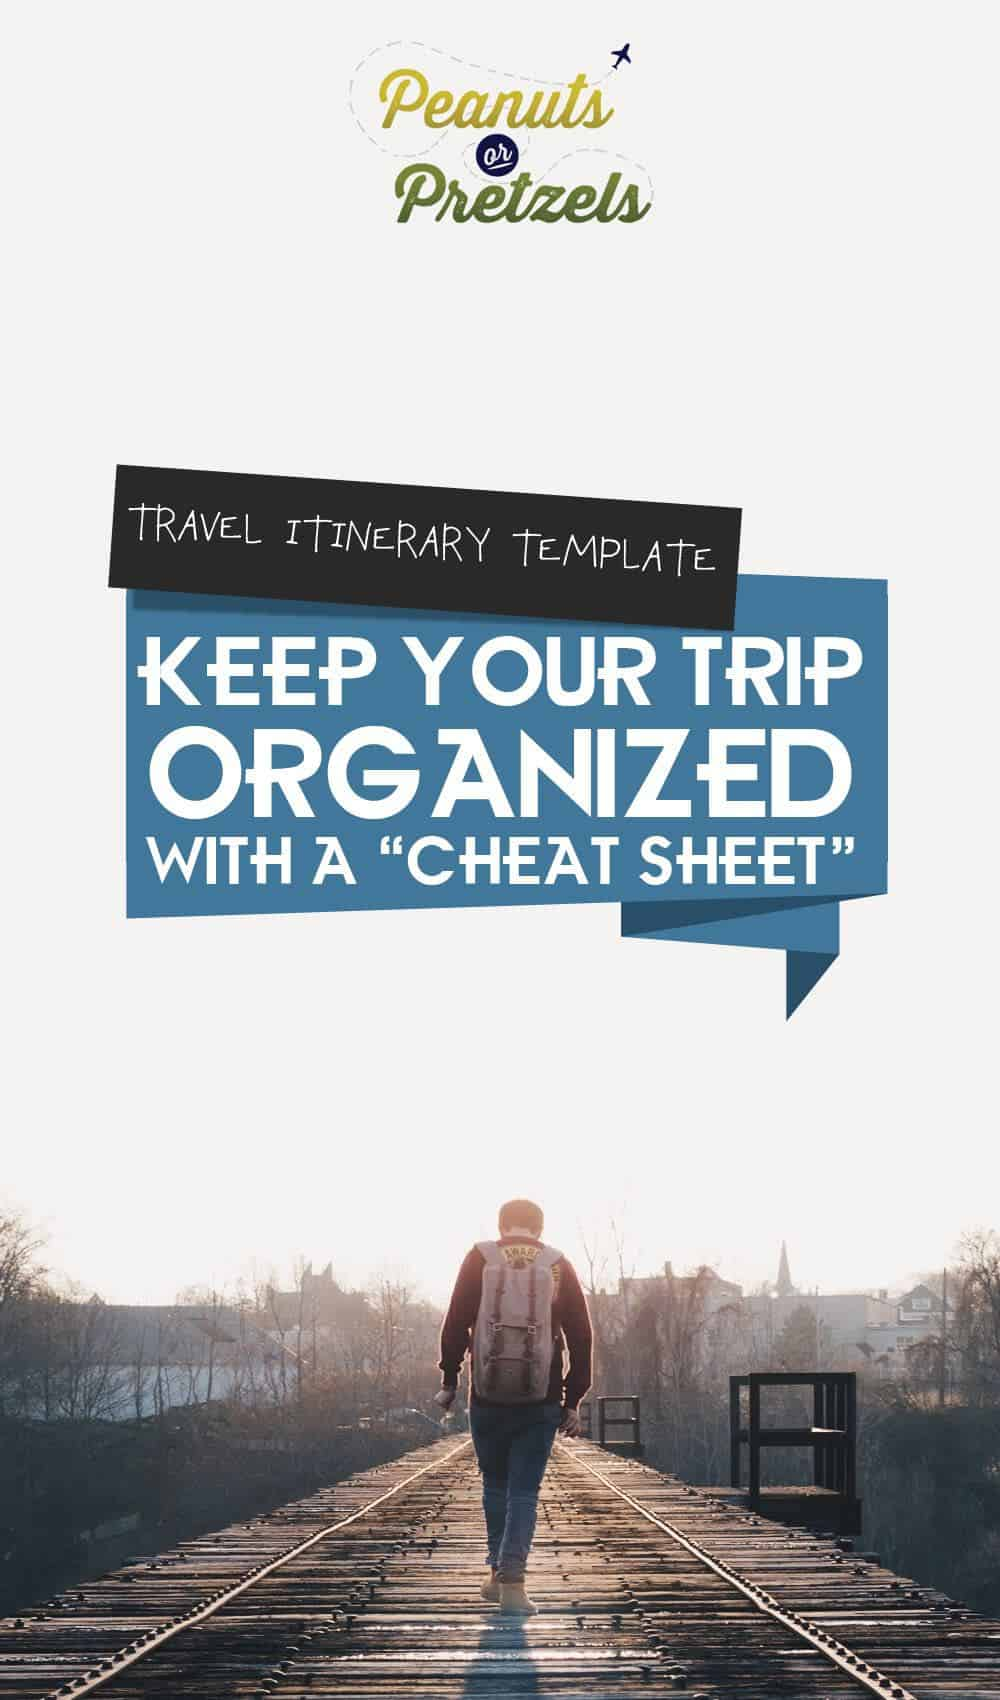 travel itinerary template, cheat sheet for a trip, trip planning word document